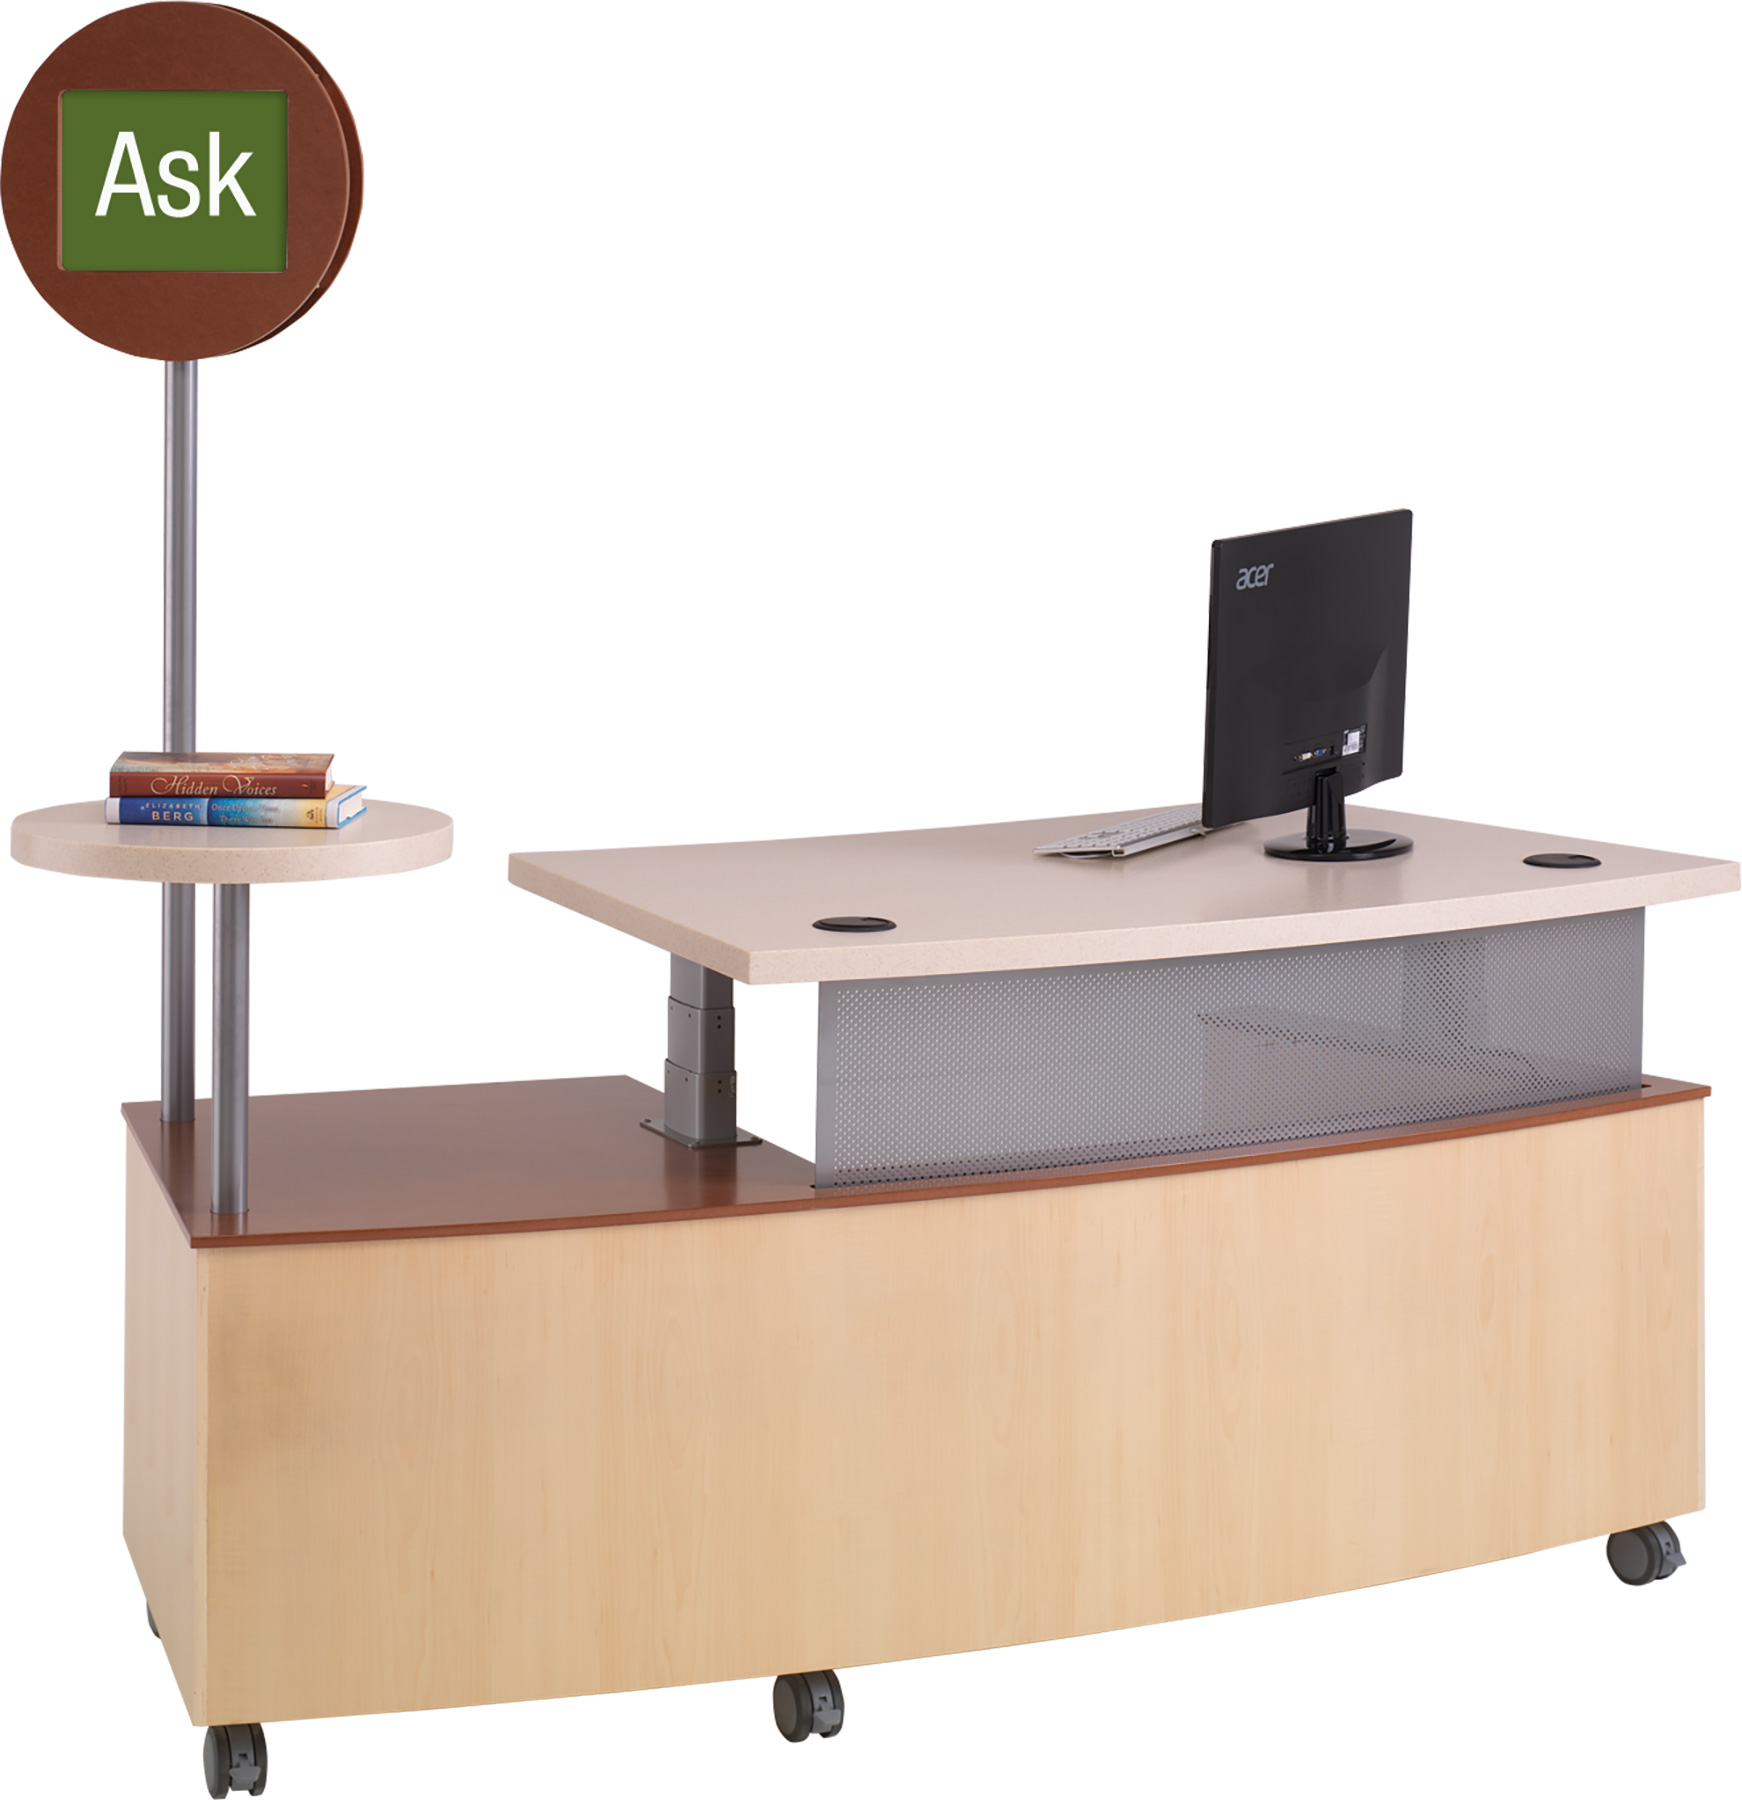 TechnoLink® Mobile Reference Desks